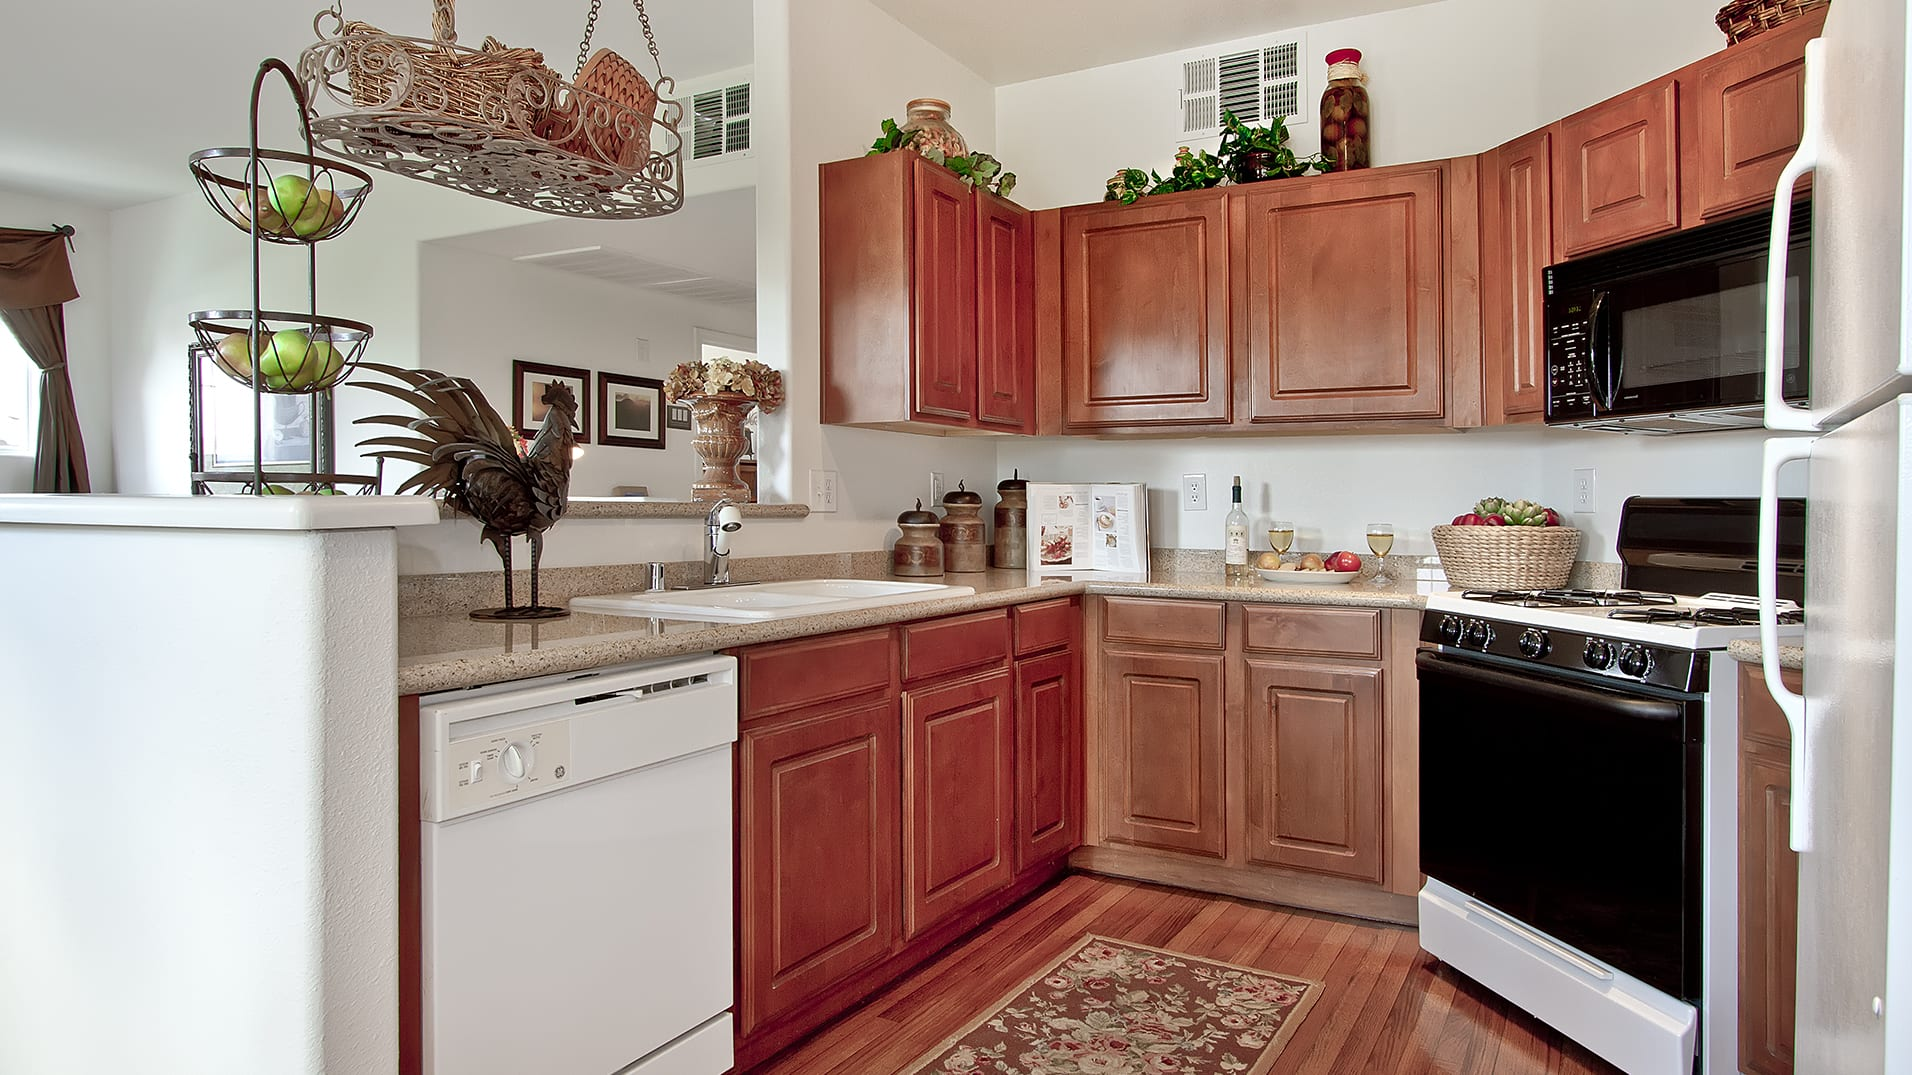 A kitchen with wood cabinets, smooth countertops, and a spacious sink.